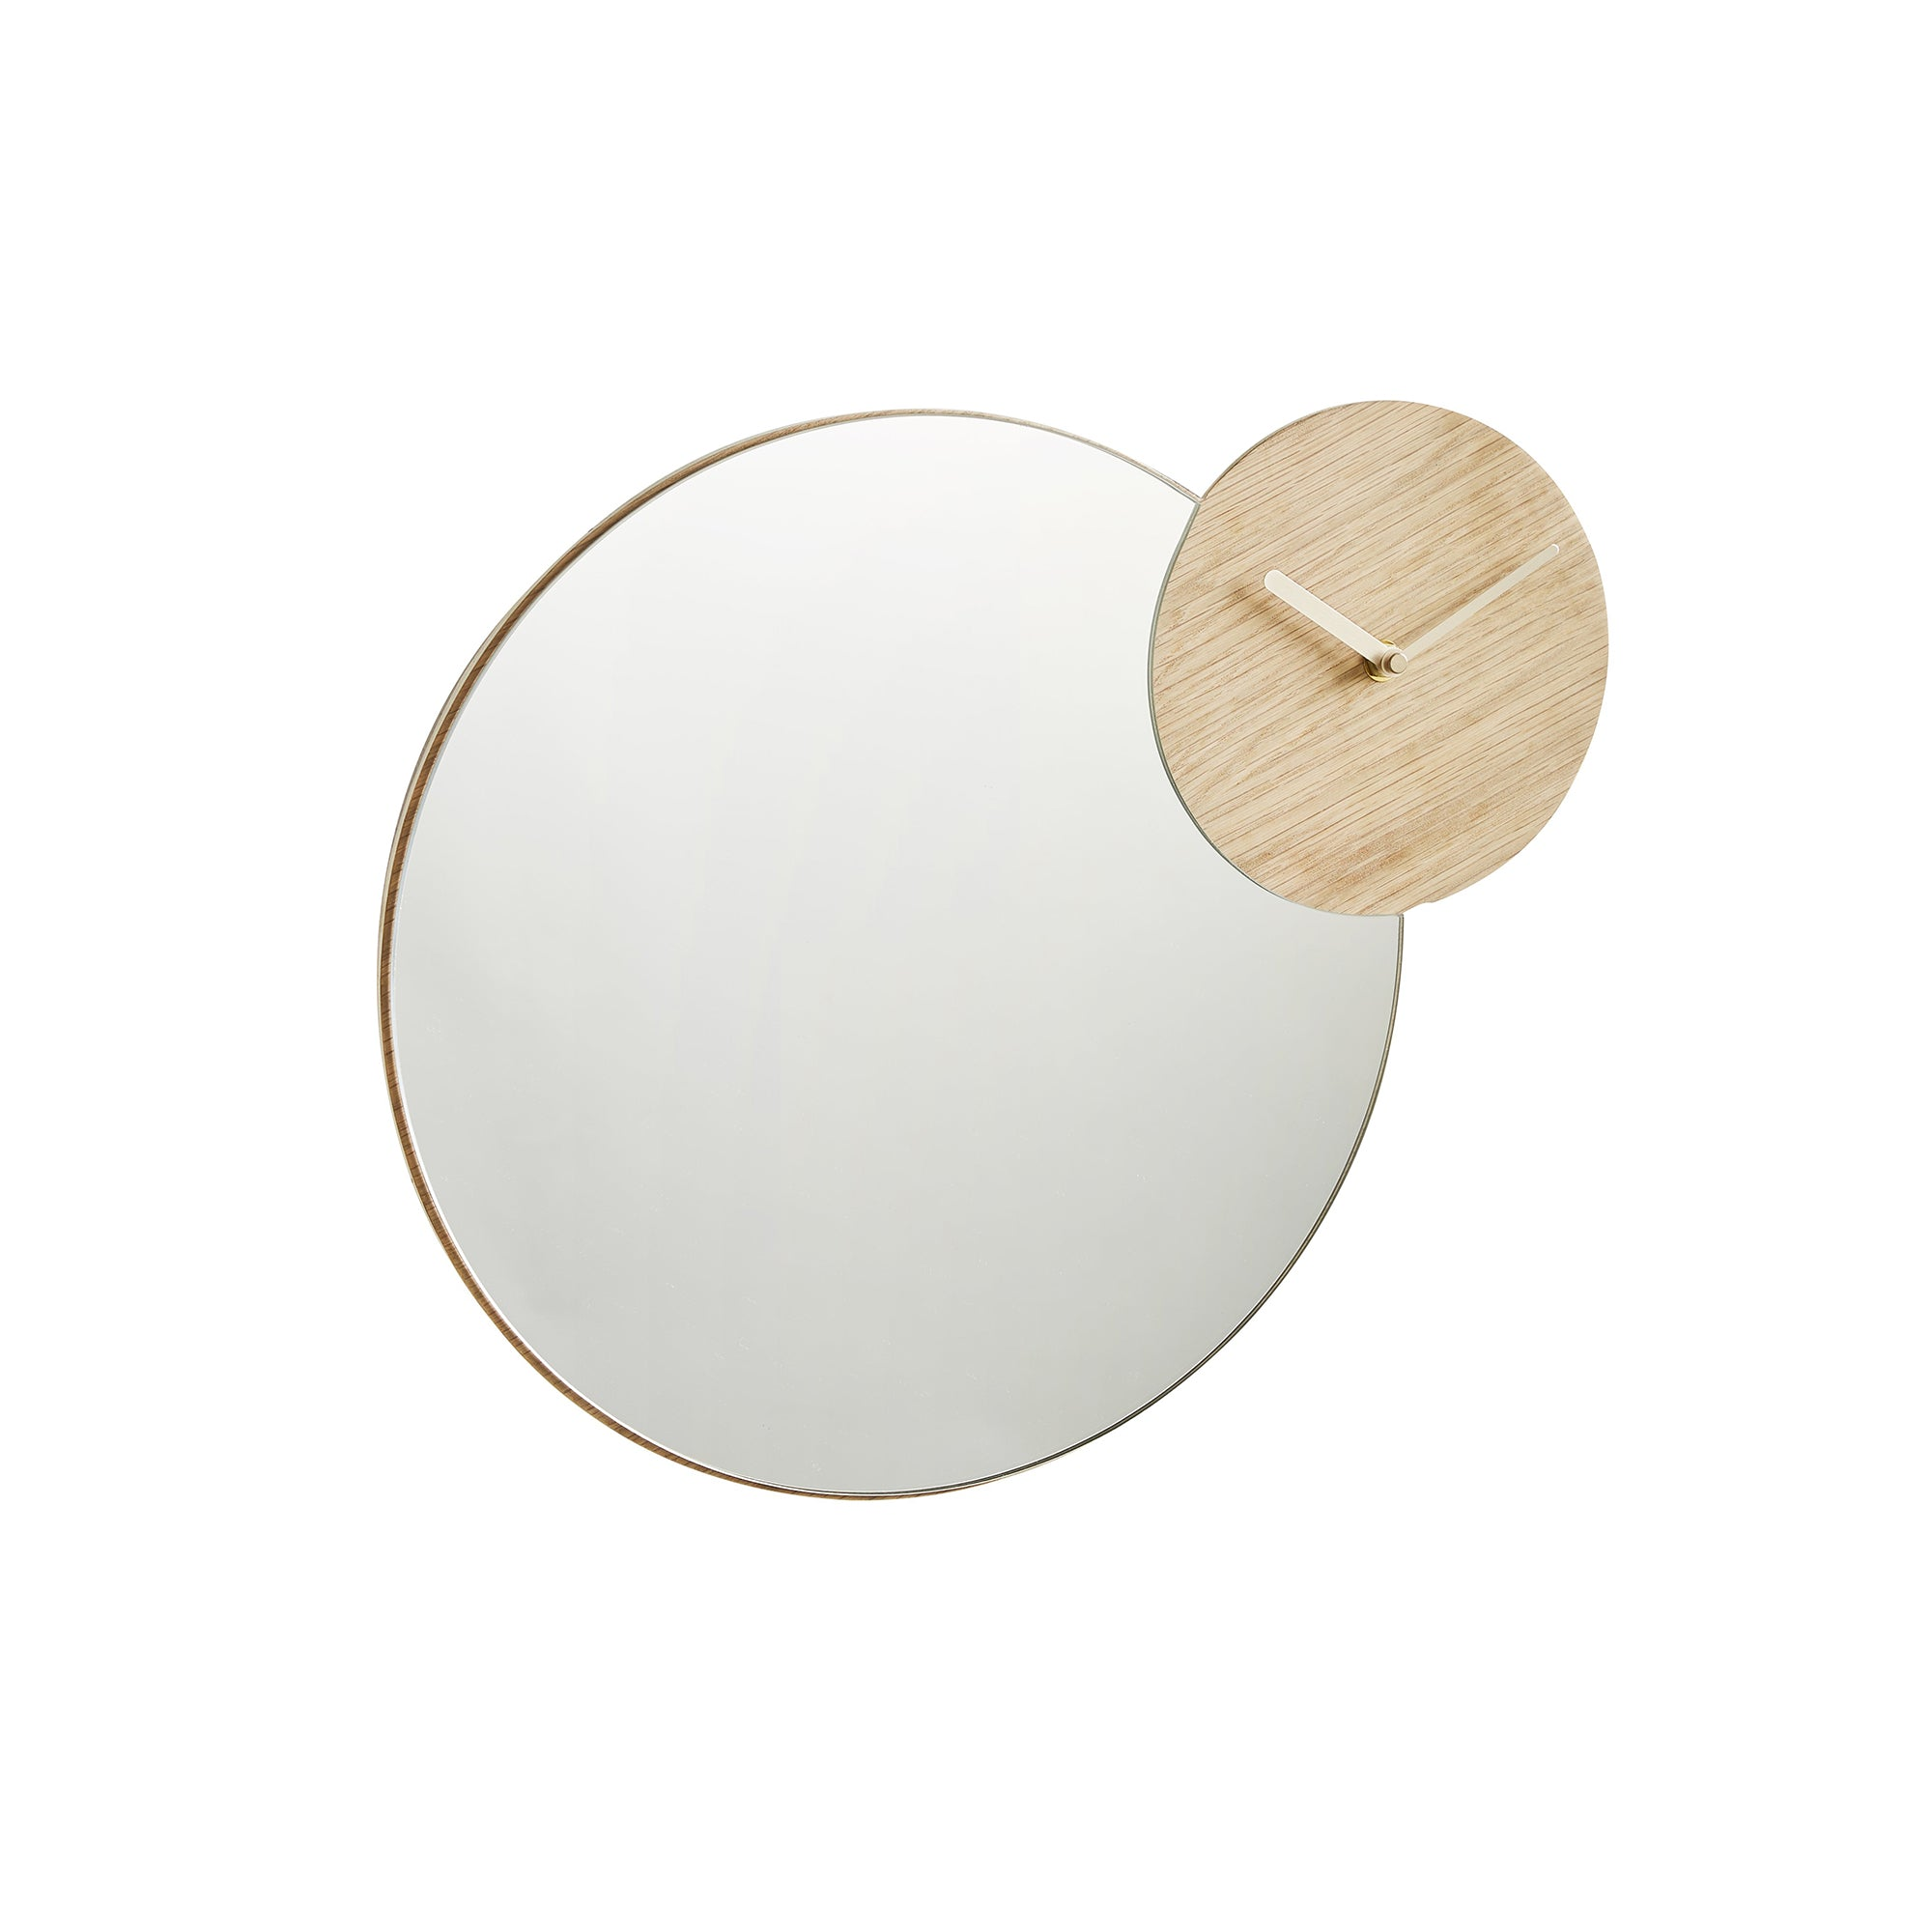 Timewatch Mirror